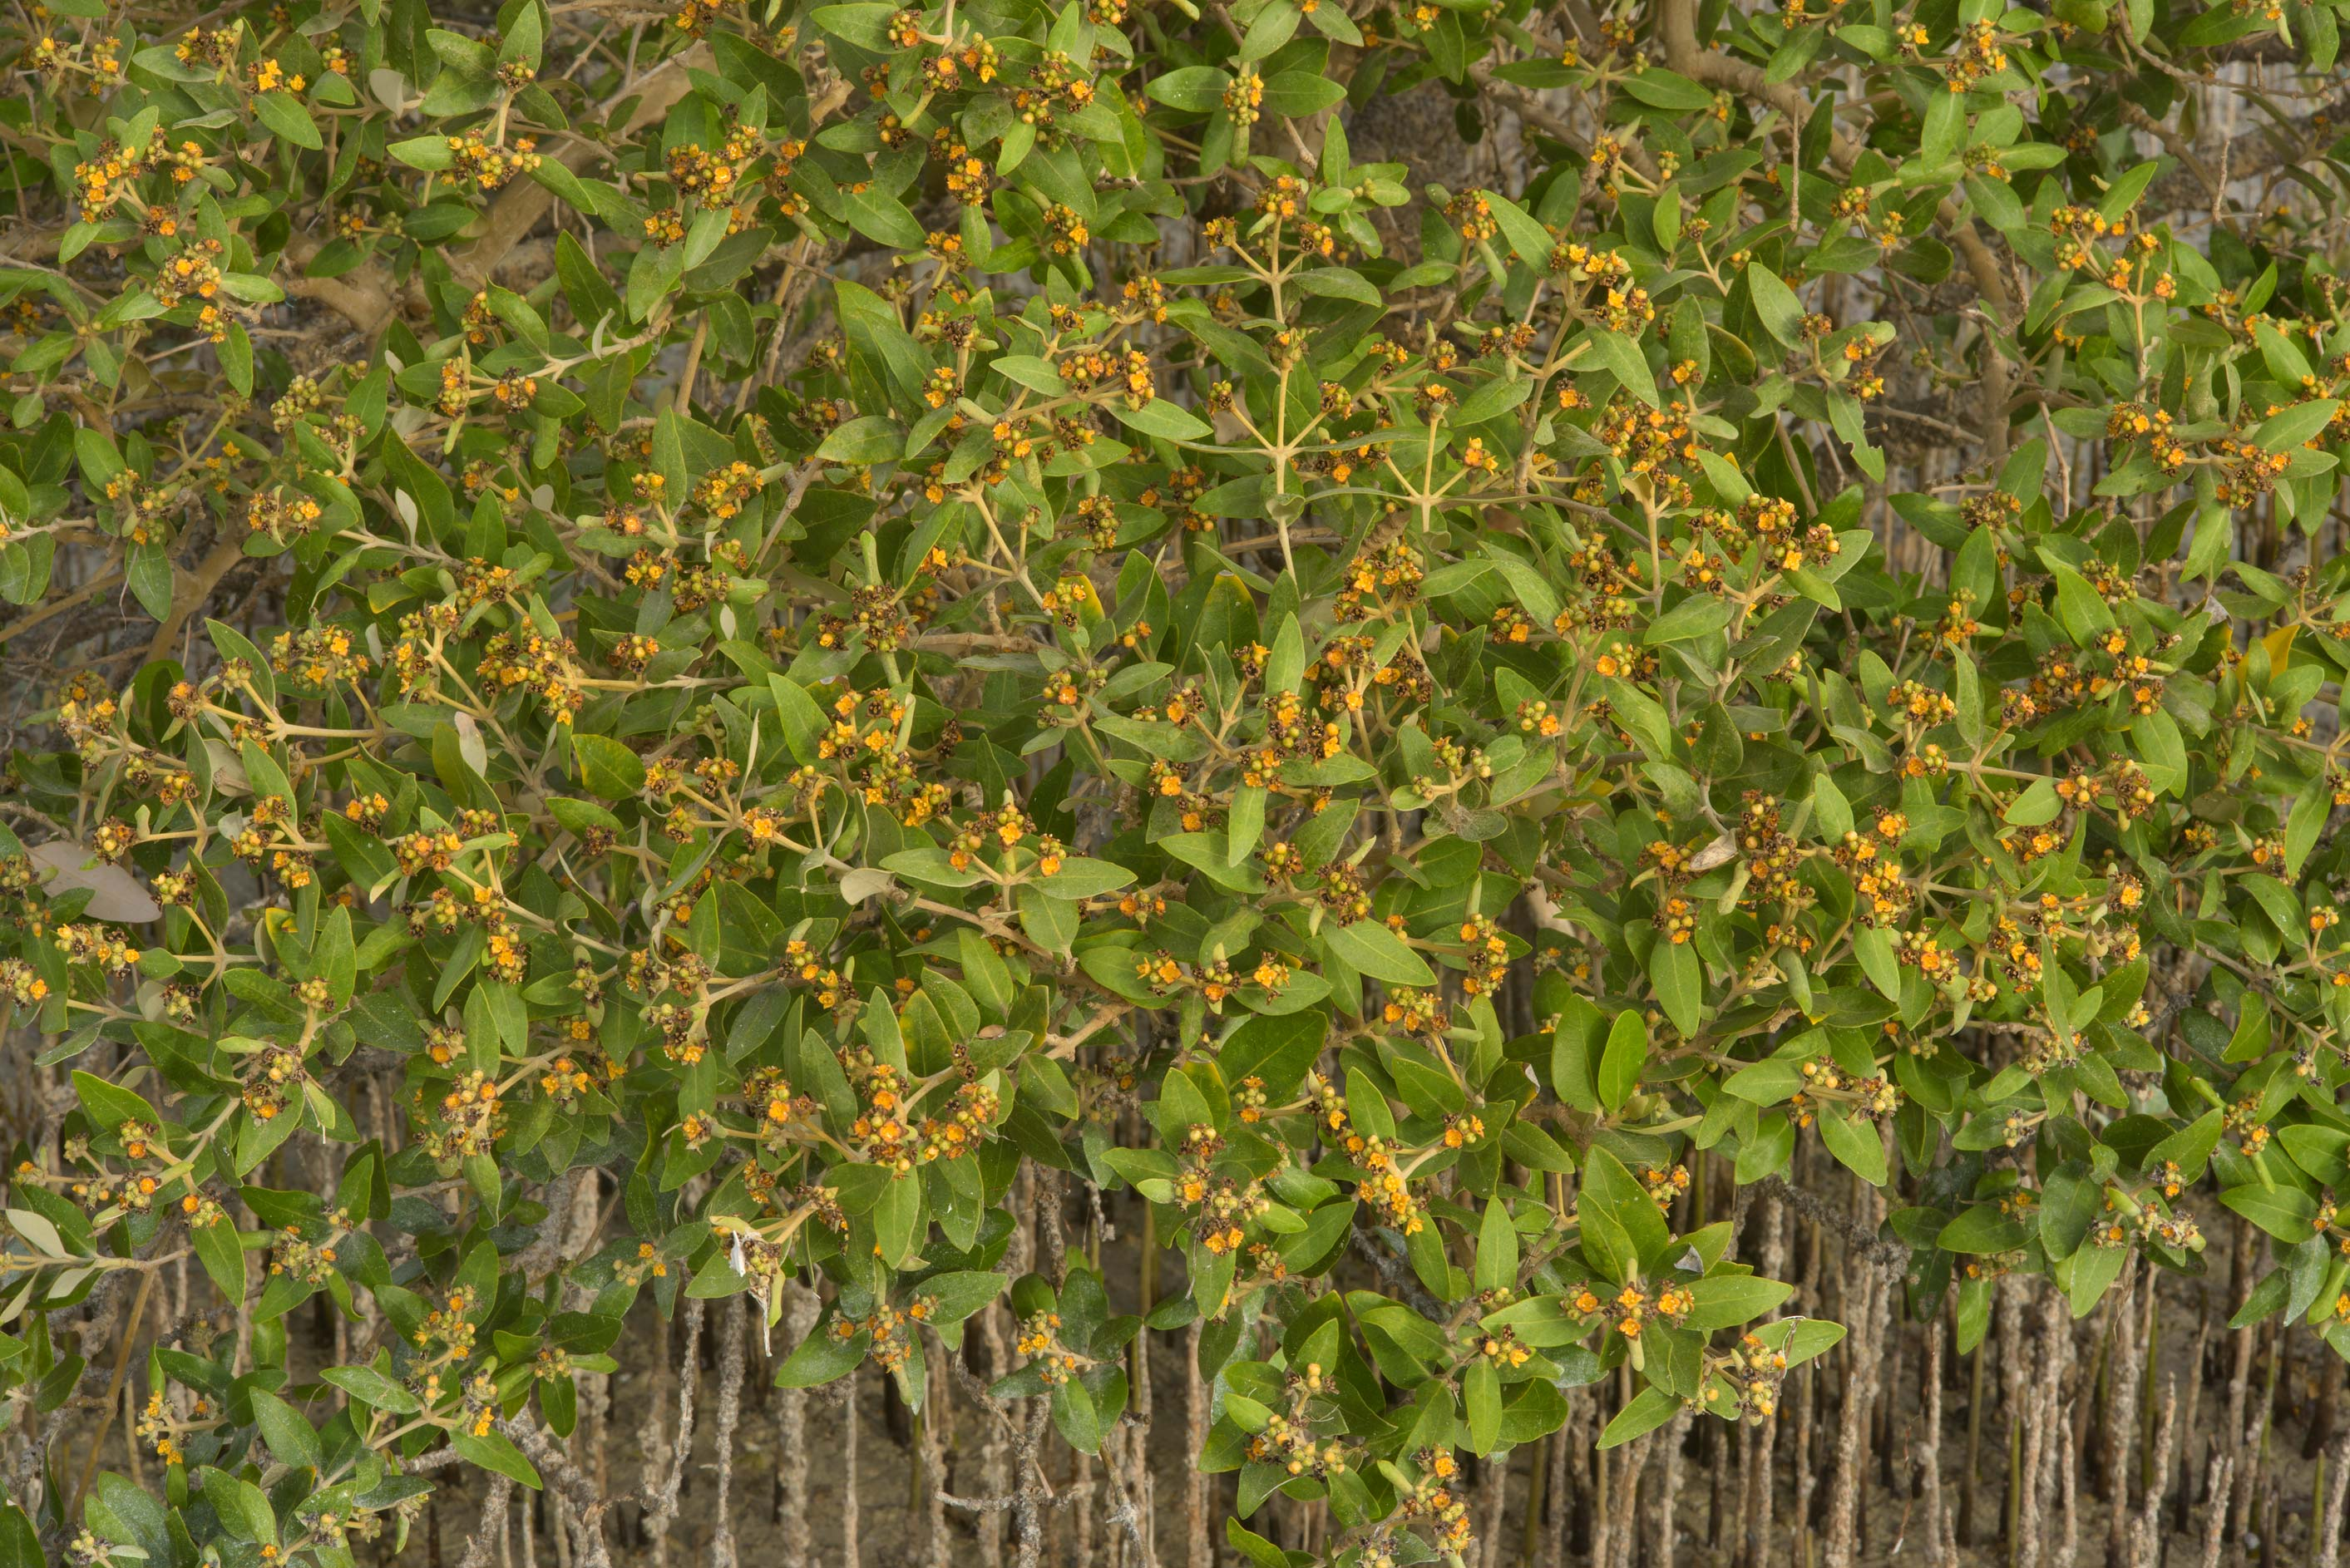 Mangrove (Avicennia marina) with flowers on...Jazirat Bin Ghanim). Al Khor, Qatar